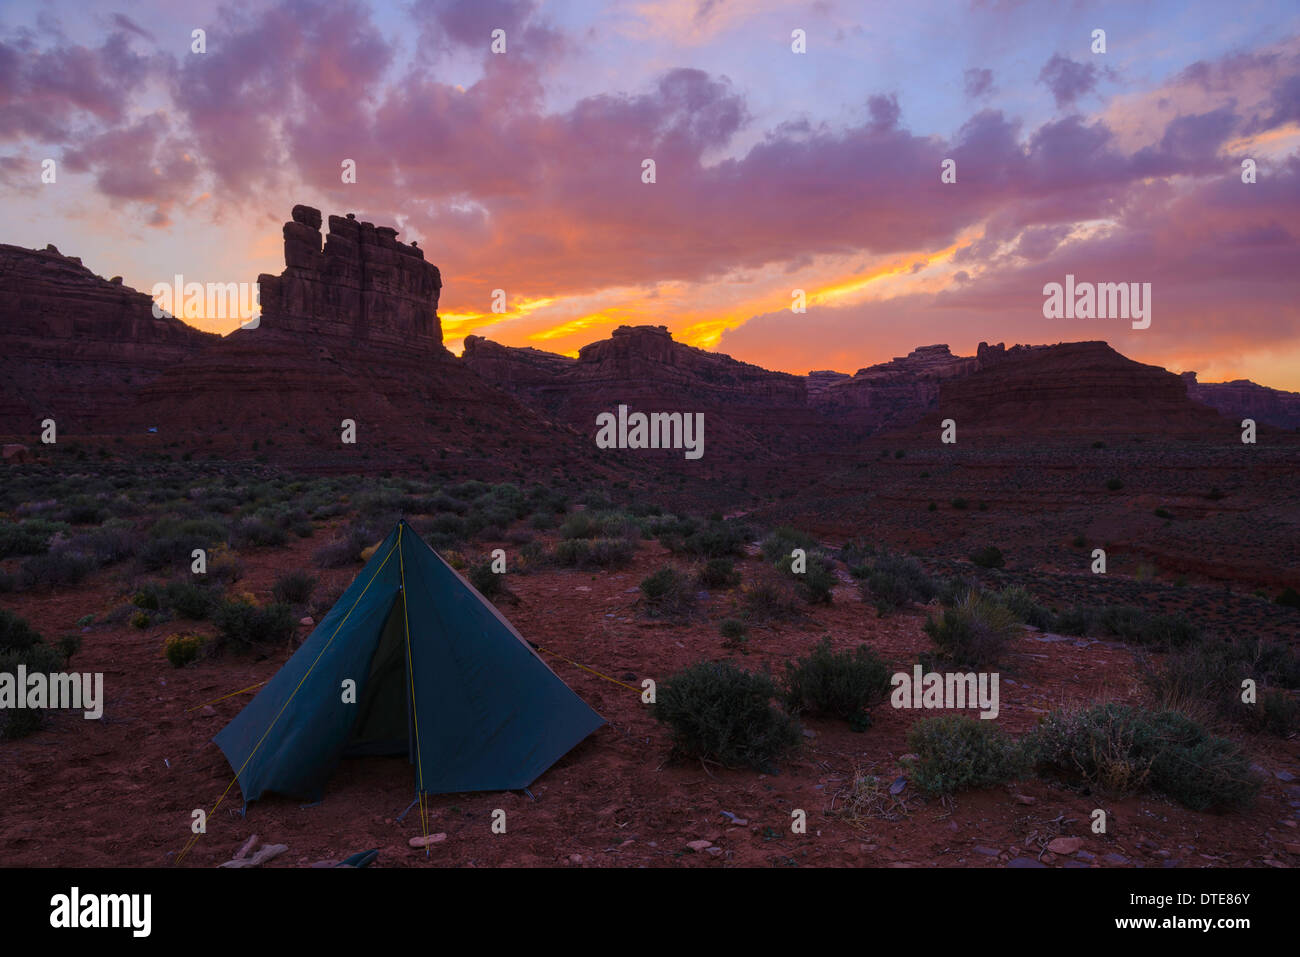 Camping in the Valley of the Gods, Utah, USA - Stock Image